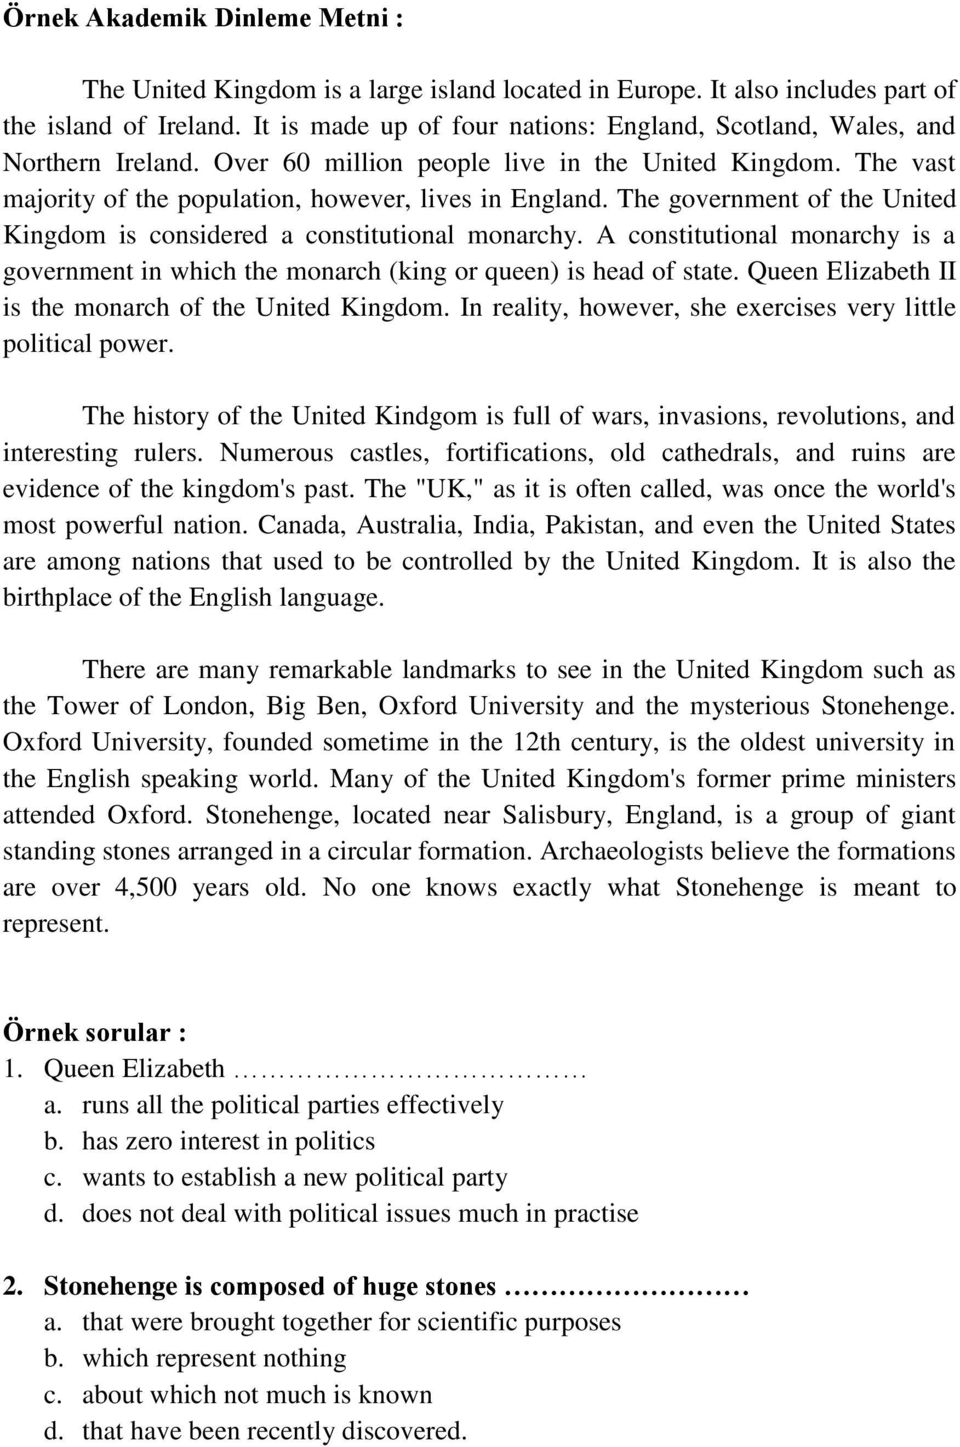 The government of the United Kingdom is considered a constitutional monarchy. A constitutional monarchy is a government in which the monarch (king or queen) is head of state.